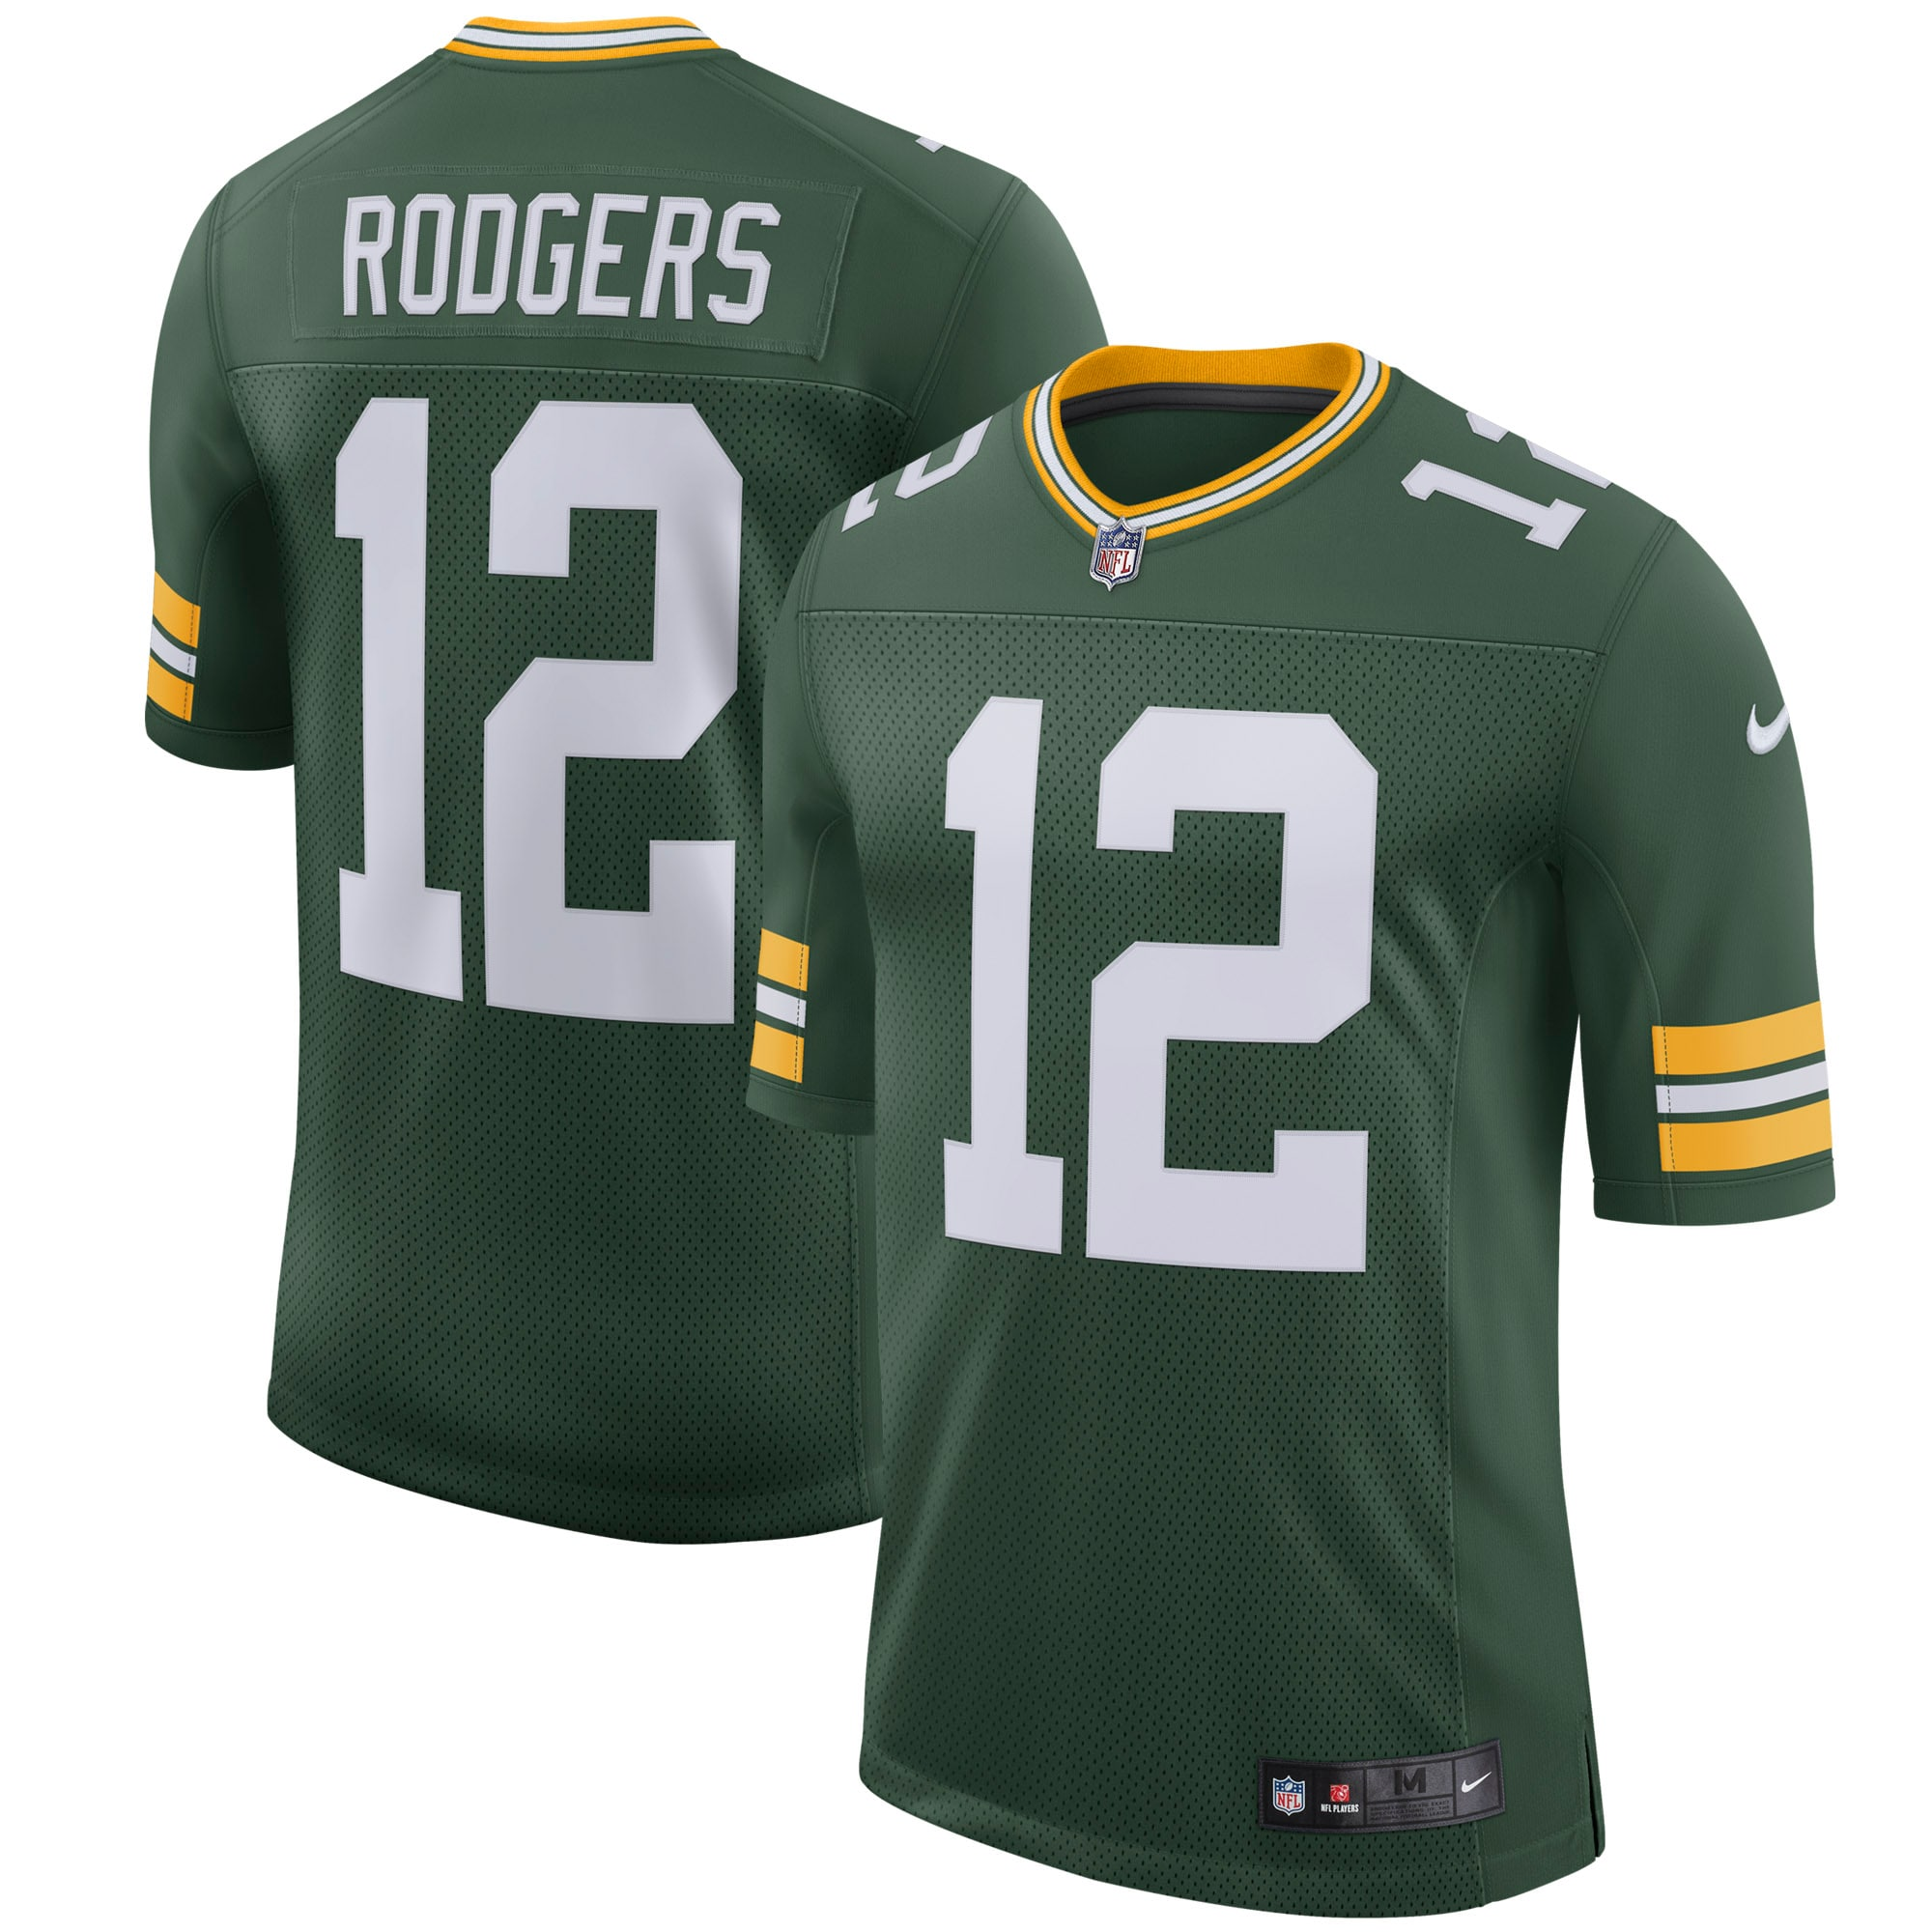 Aaron Rodgers Green Bay Packers Nike Youth Classic Limited Player Jersey - Green